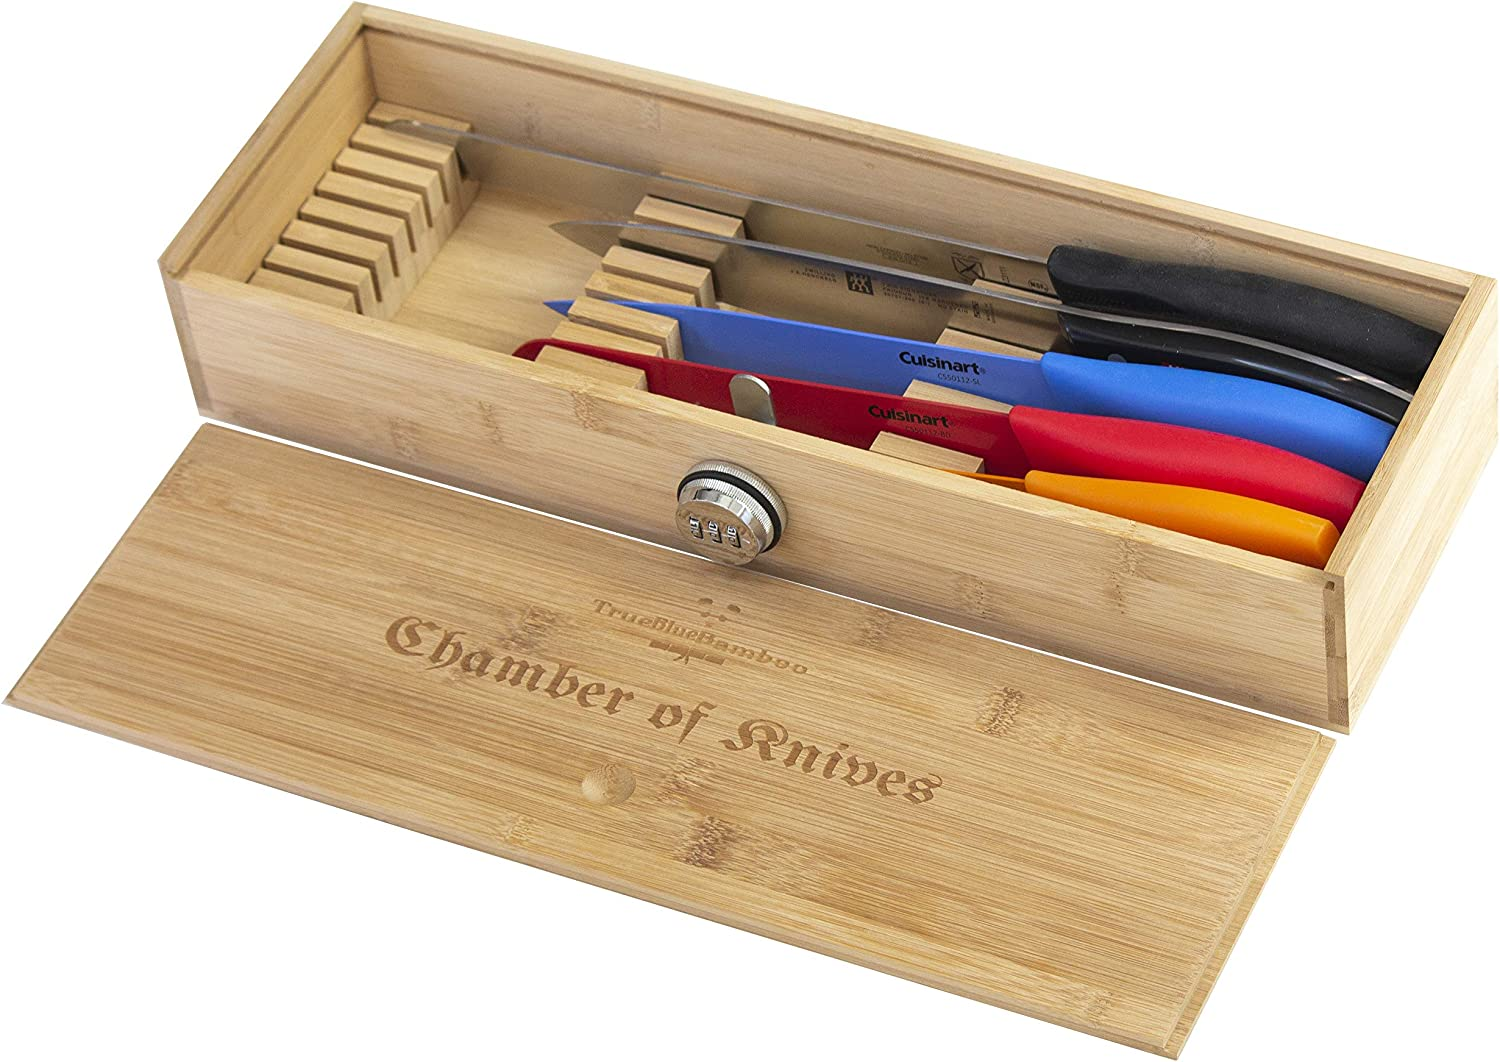 In Drawer Bamboo Chef Knives/Kitchen Knives Organizer Box - with Kid Safety combination lock - Holds up to 25 Knives (Not included) - Knives storage with tips pointing down